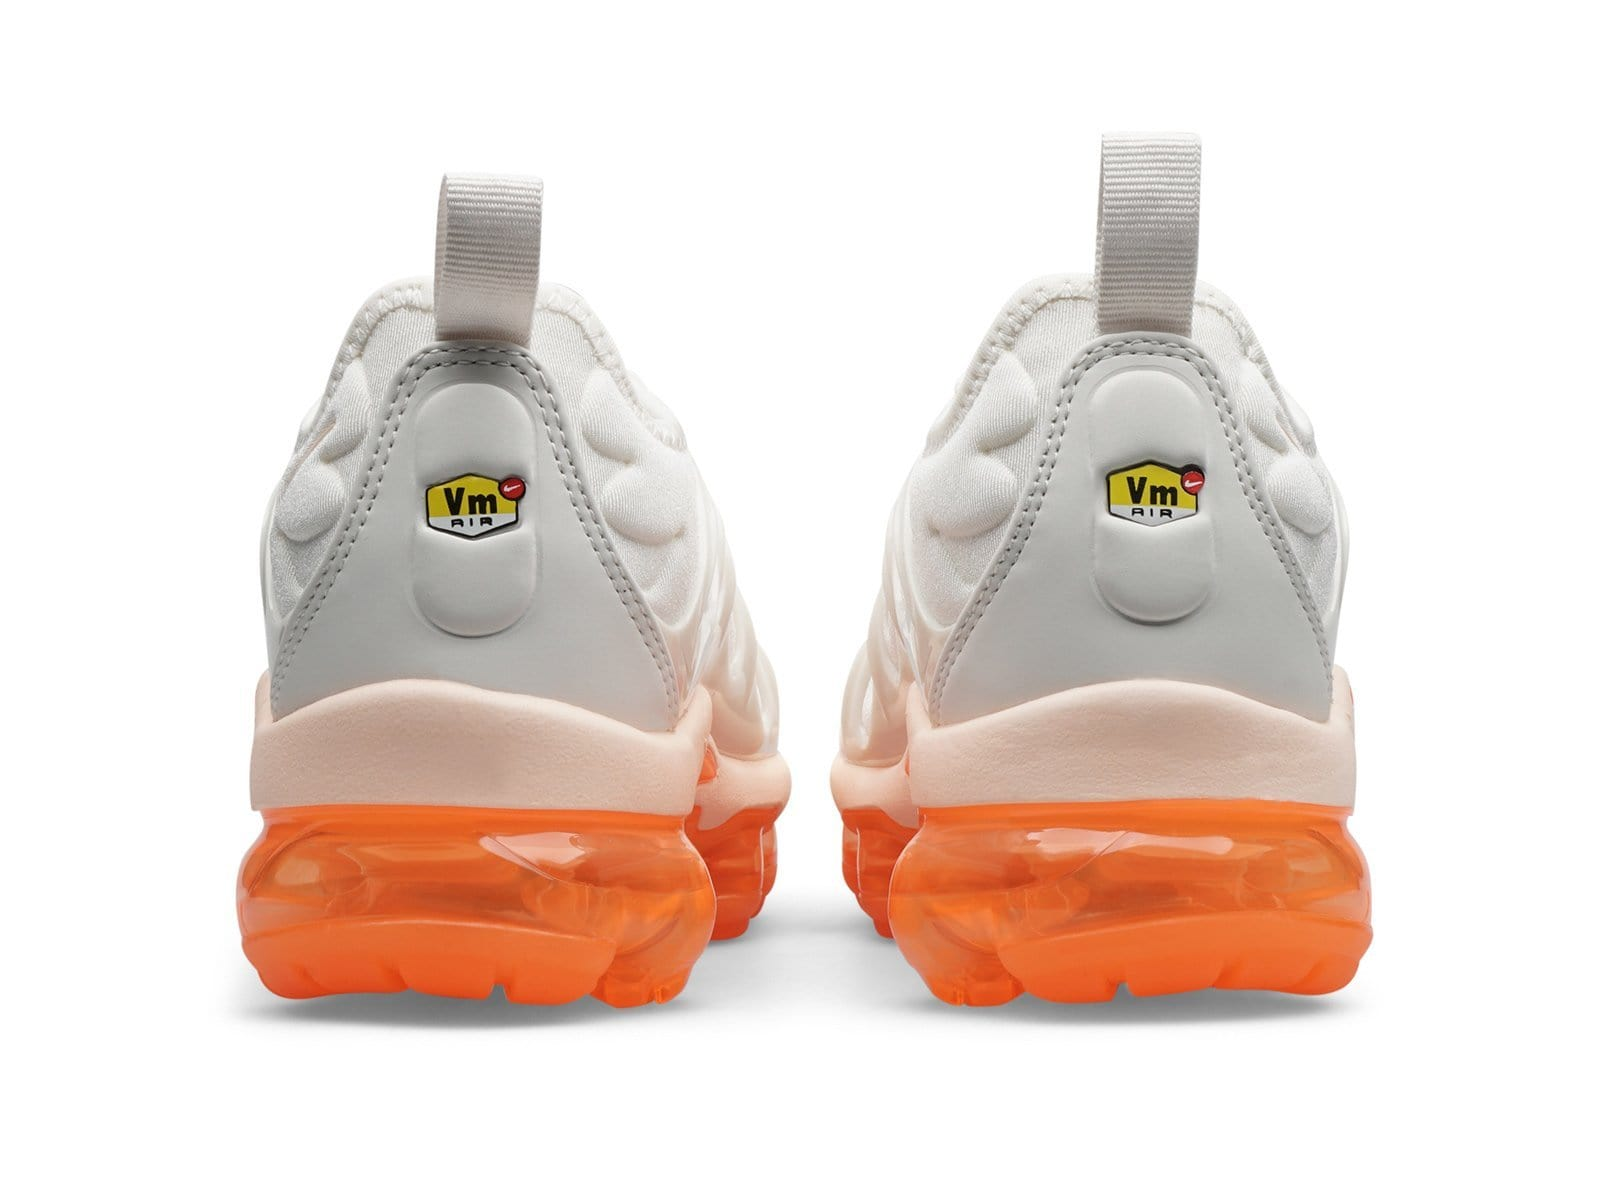 0ba2394f1fe74 Women s AIR VAPORMAX PLUS AO4550 005 – Bodega